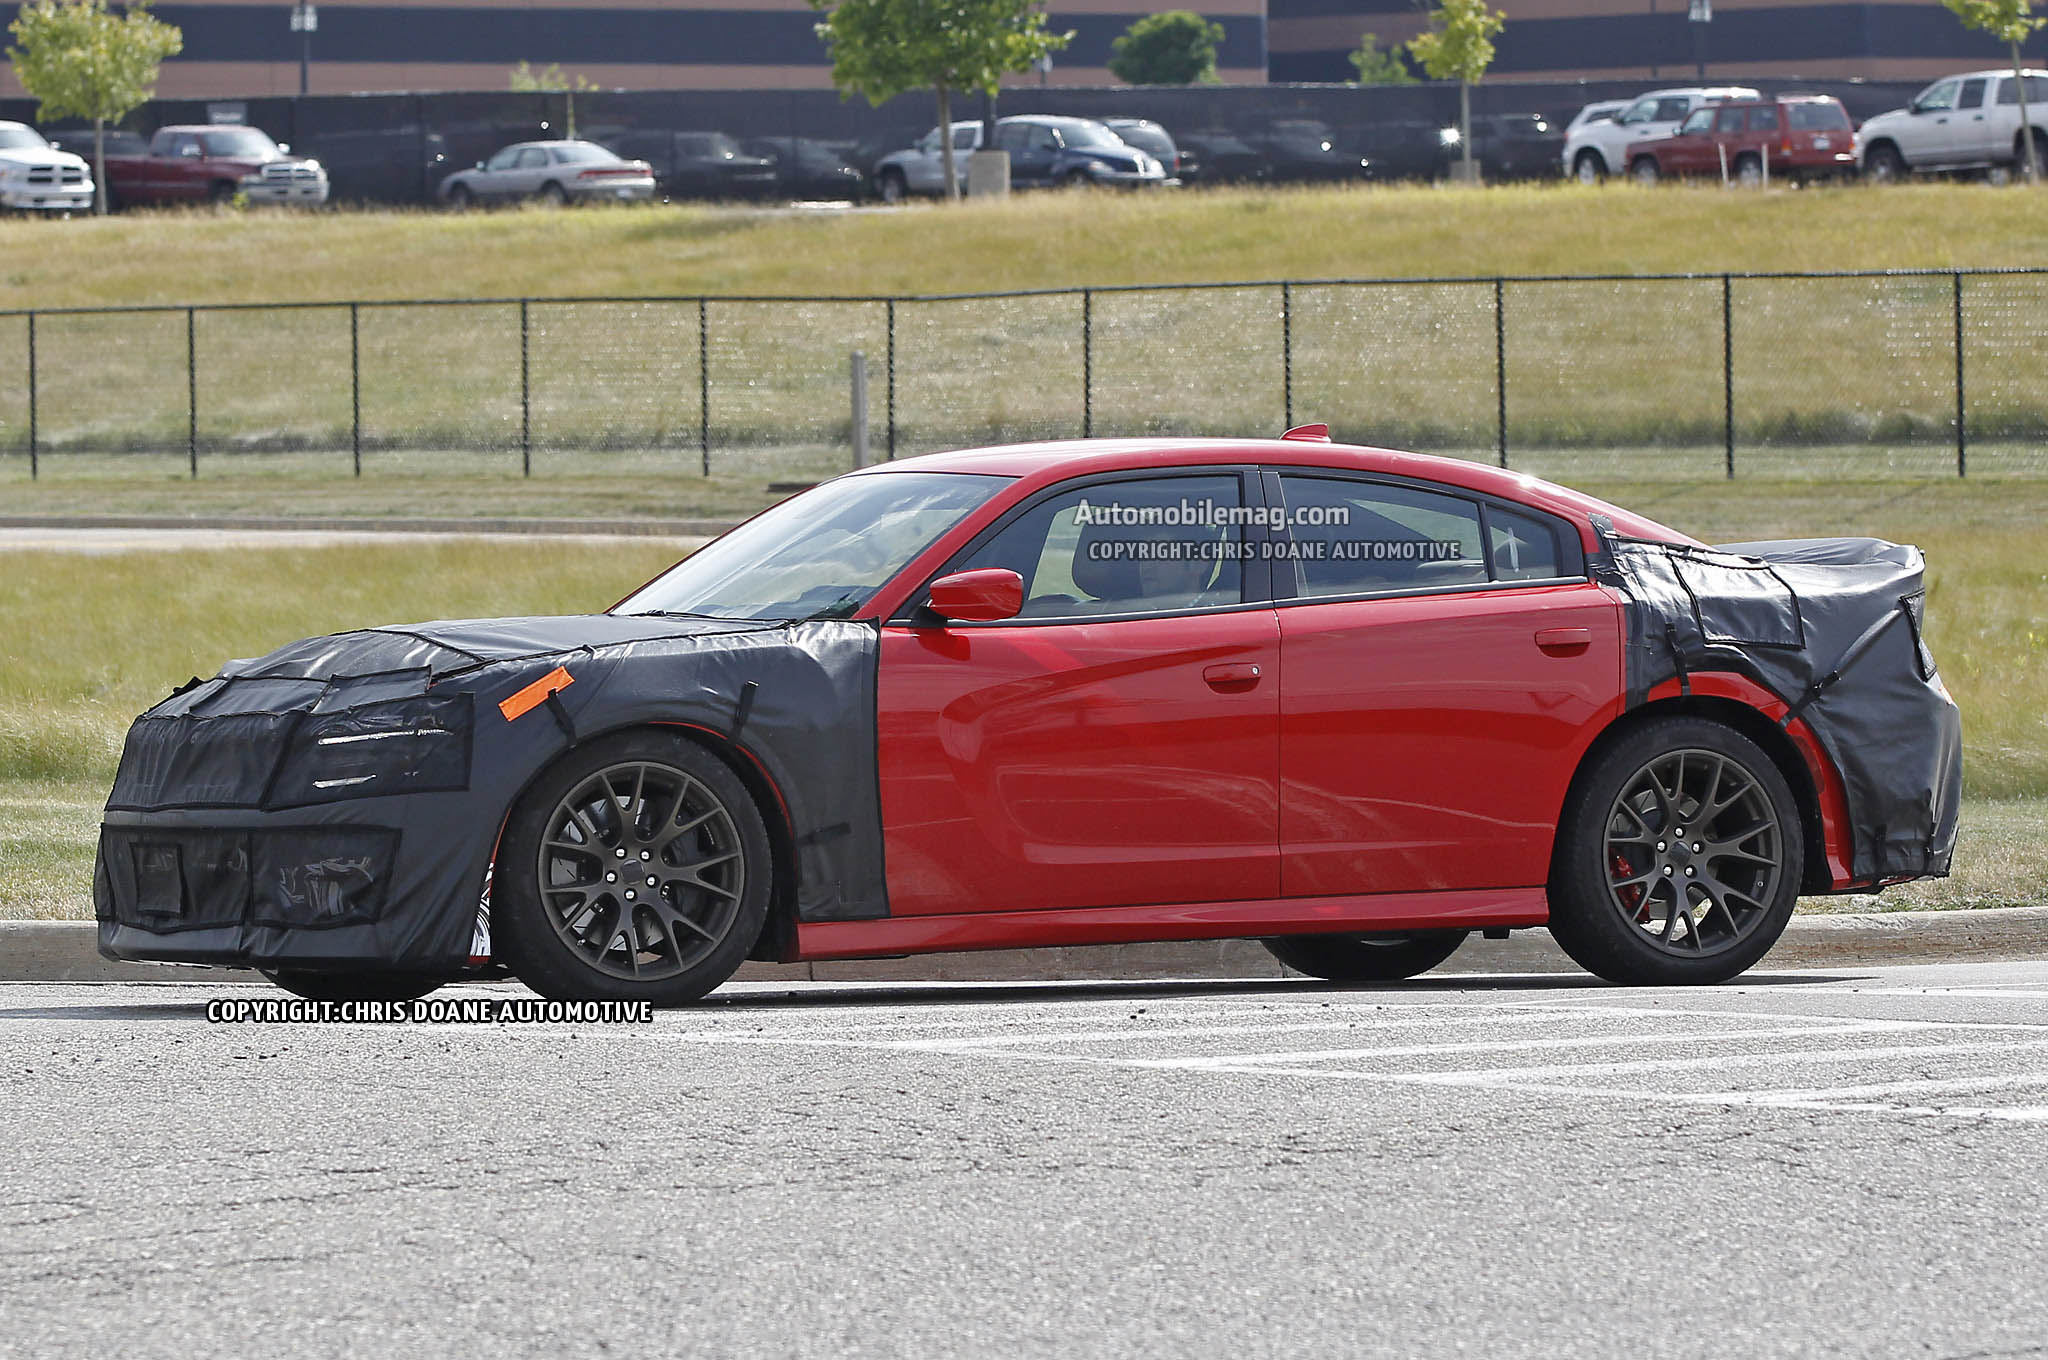 spied 2015 dodge charger srt hellcat prototype. Black Bedroom Furniture Sets. Home Design Ideas